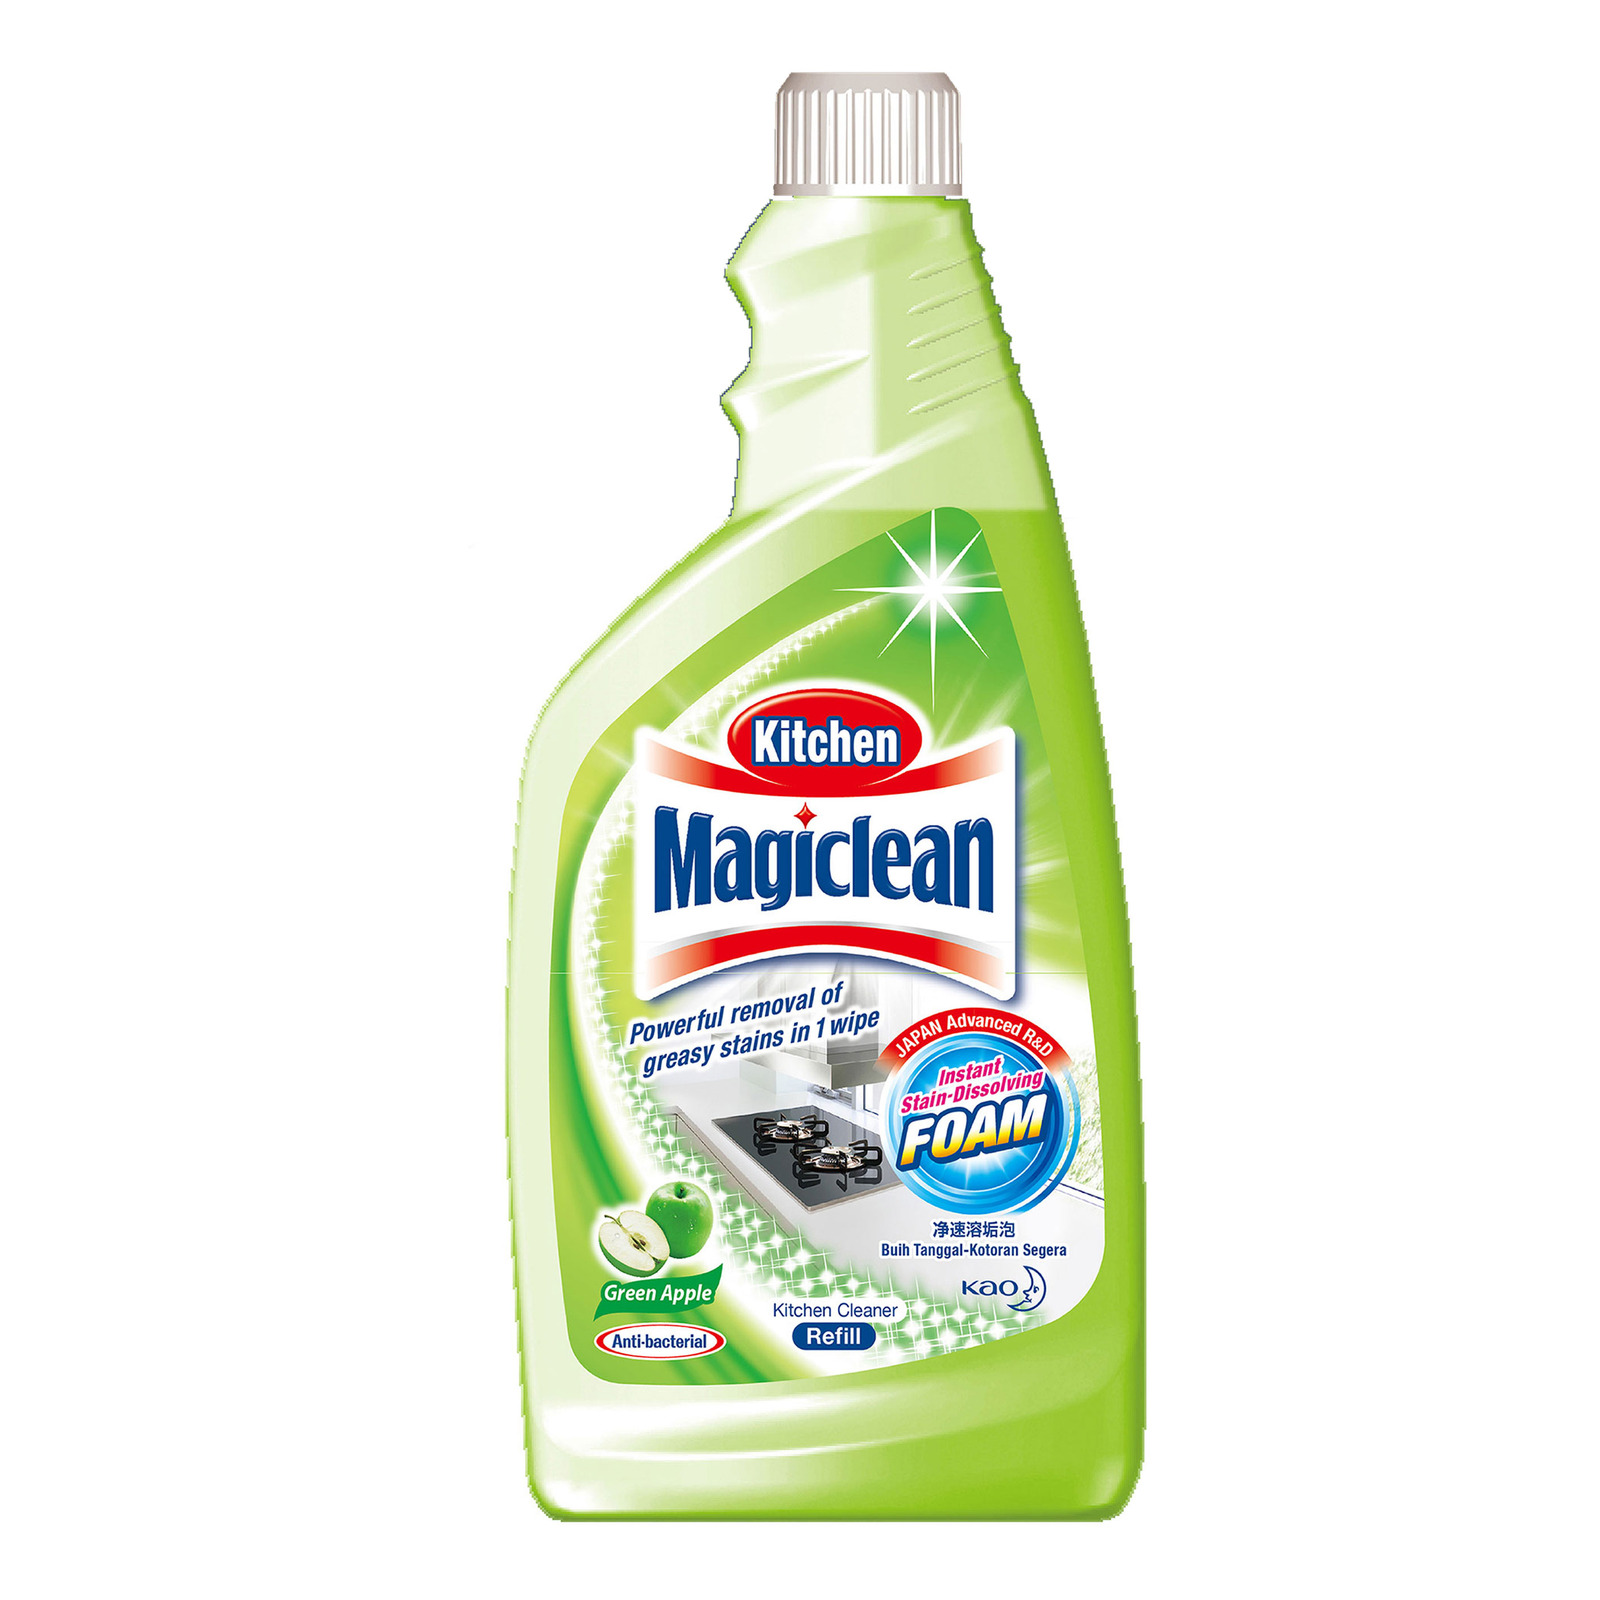 Magiclean Green Apple Scent Kitchen Cleaner Refill Pack